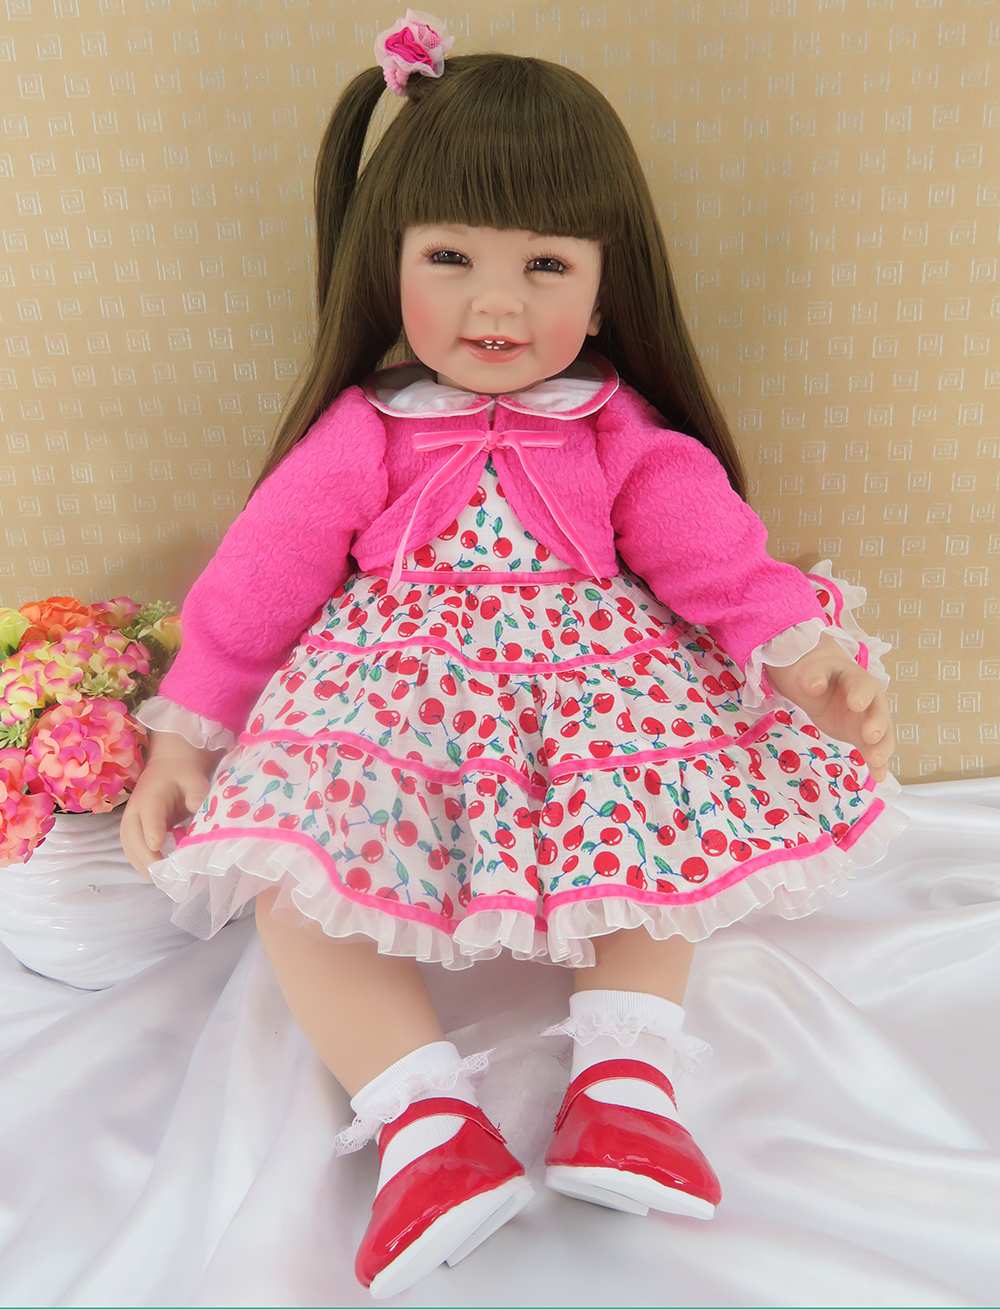 Pursue 24/60 cm Pretty in Pink Long Hair Silicone Reborn Toddler Princess Baby Girl Dolls Toys Children Girls Birthday Gift Toy ободки pretty mania ободок